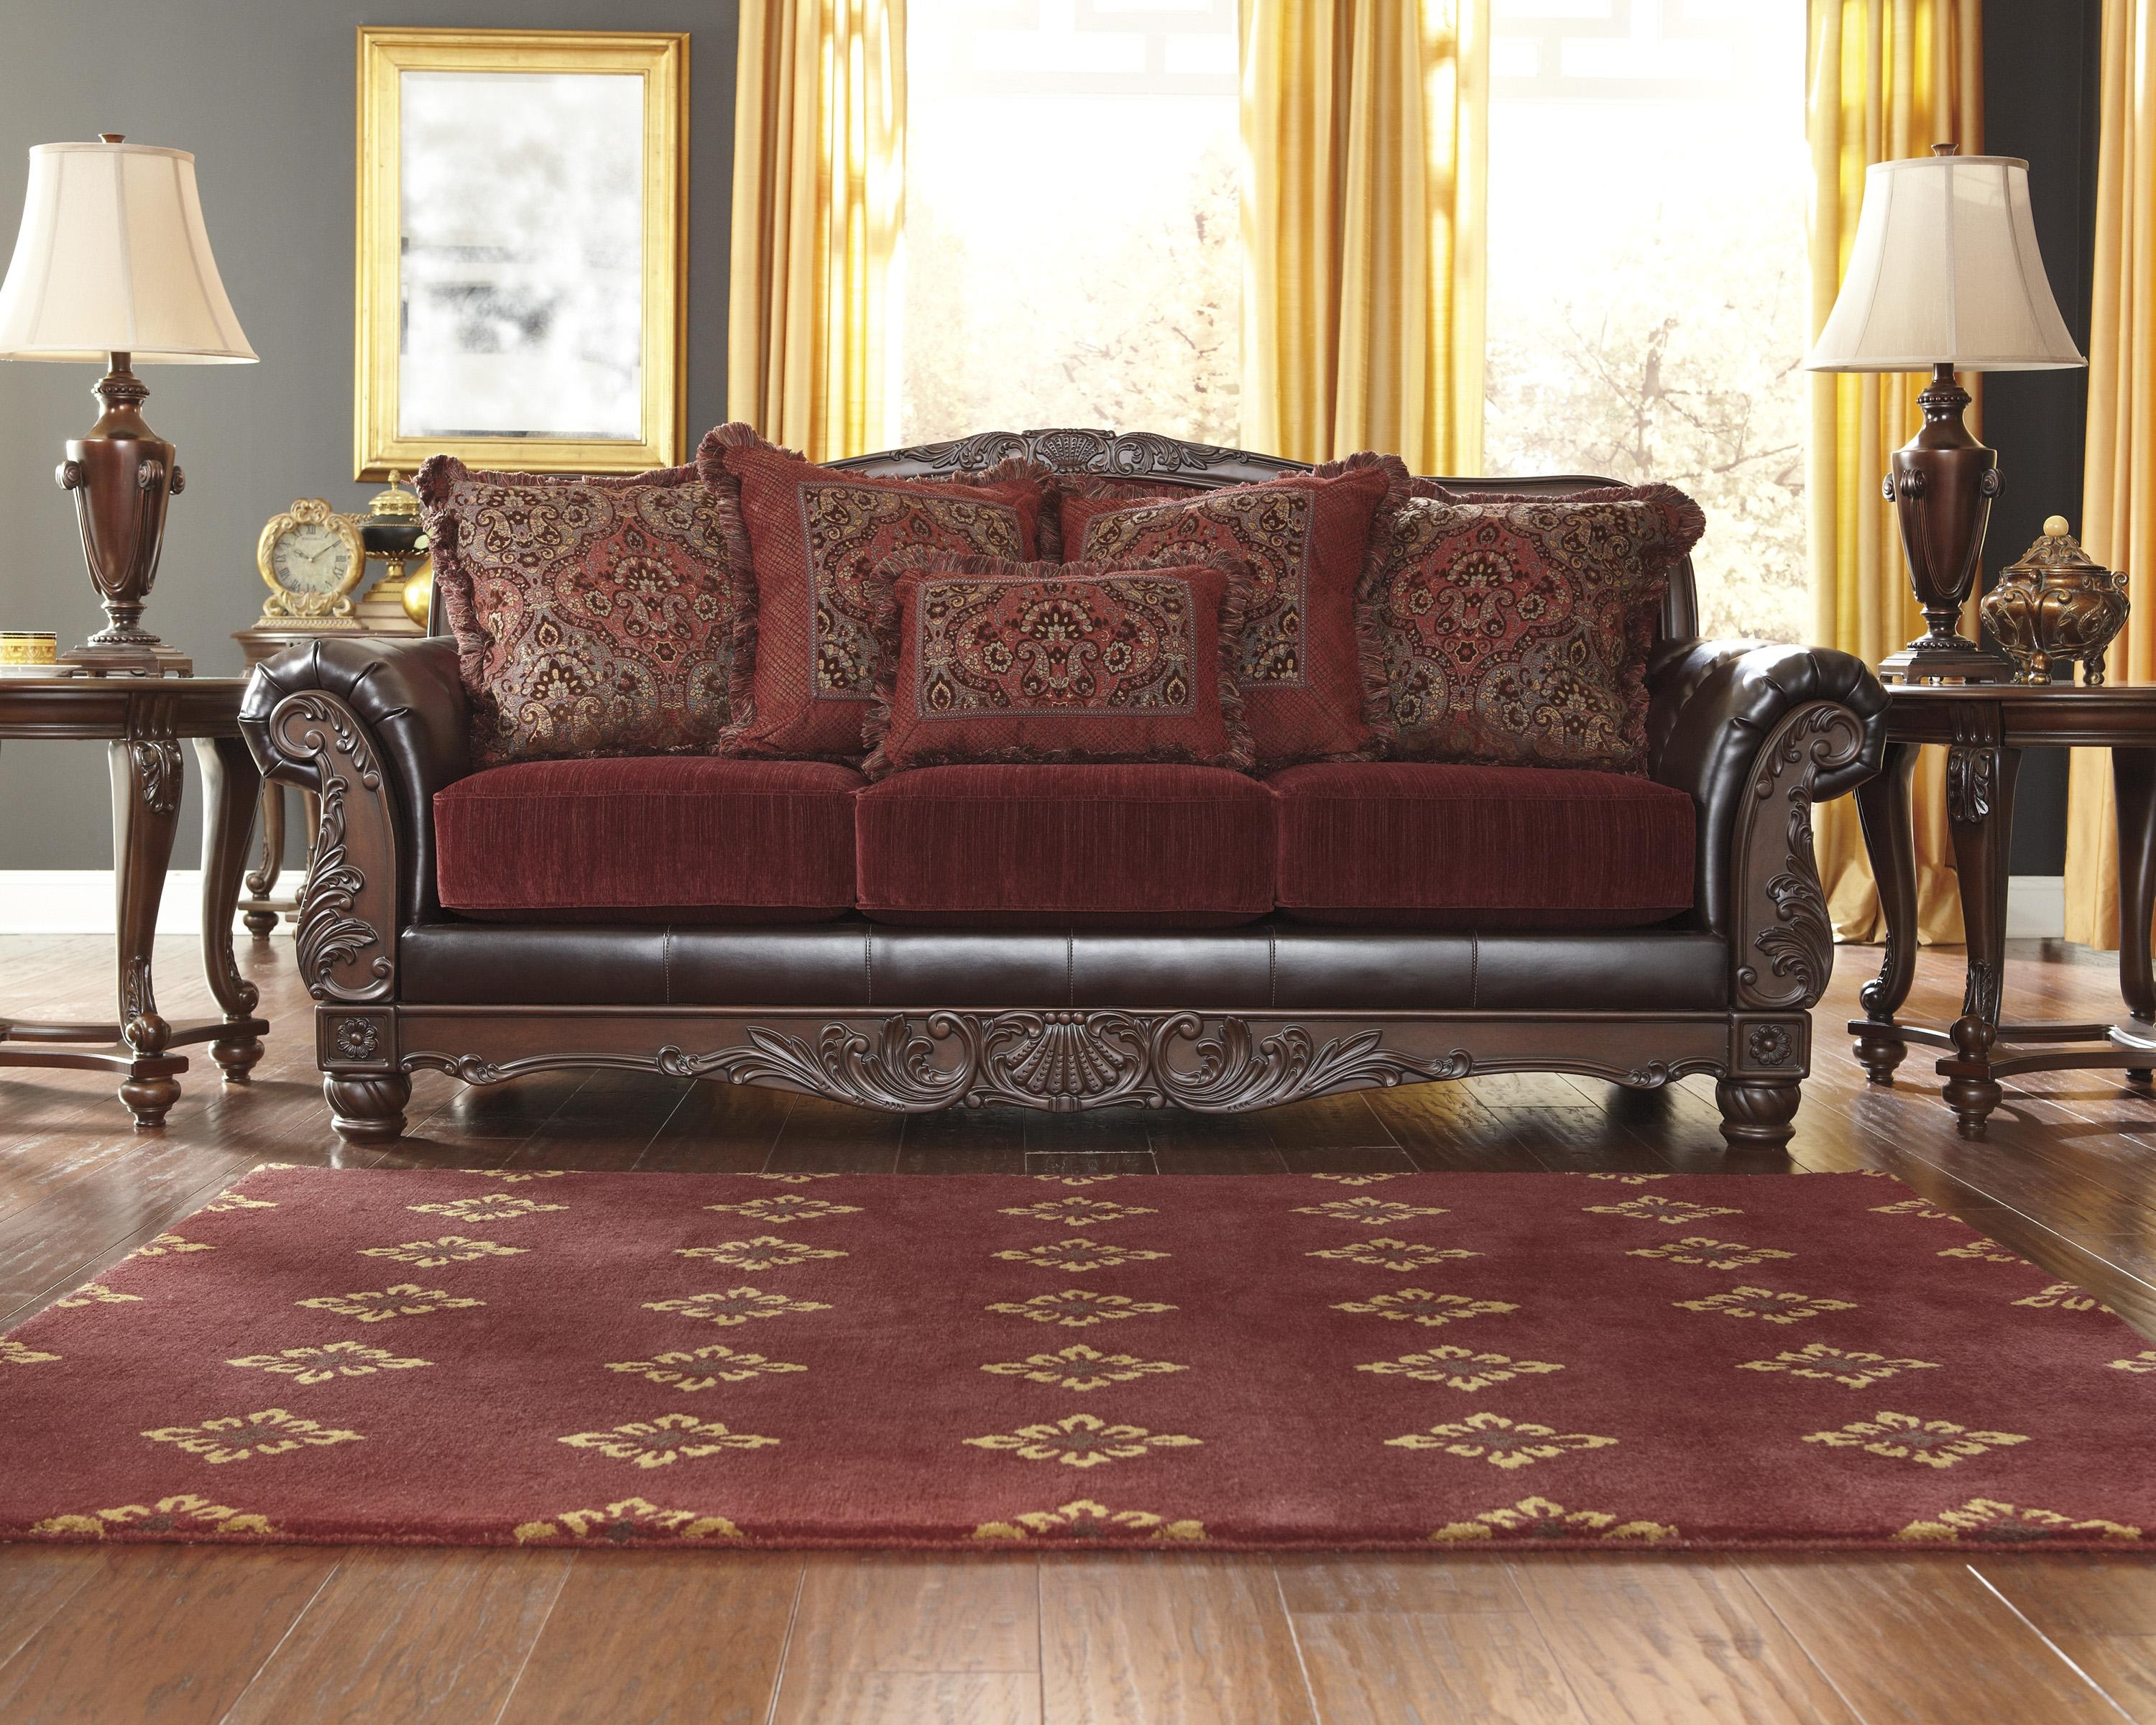 Living Room: Elegant Burgundy Living Room Set 5 Piece Living Room For Burgundy Leather Sofa Sets (View 19 of 20)